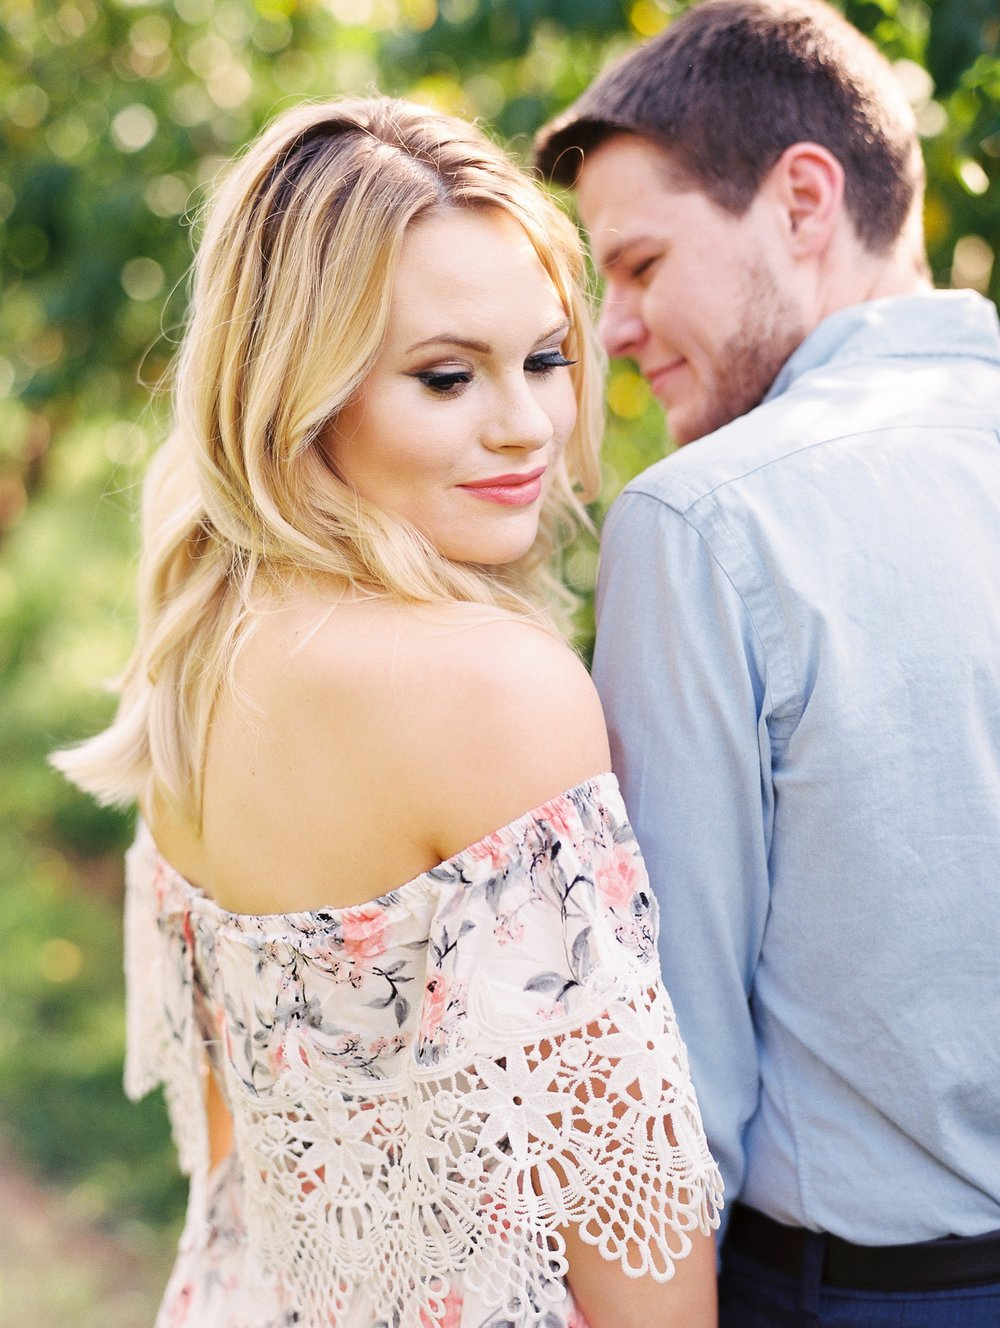 Peach-Orchard-Engagement-Session-Arkansas_0011.jpg